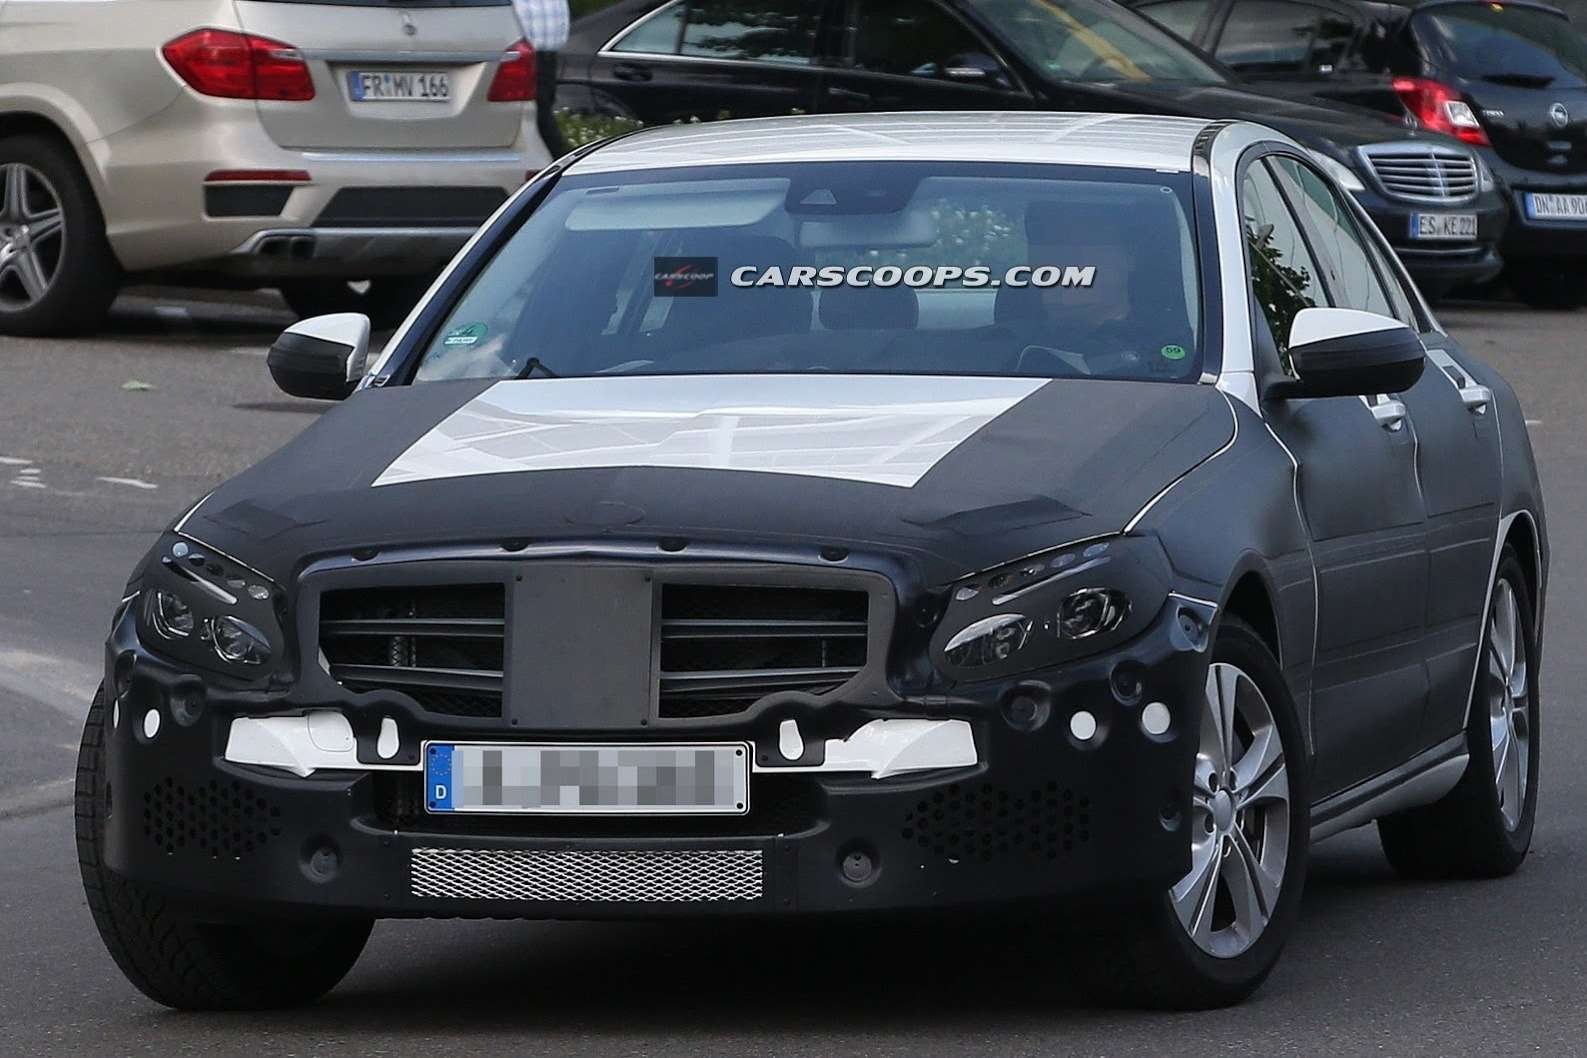 2015 Mercedes C Class Undisguised Carscoops4[3] no copyright